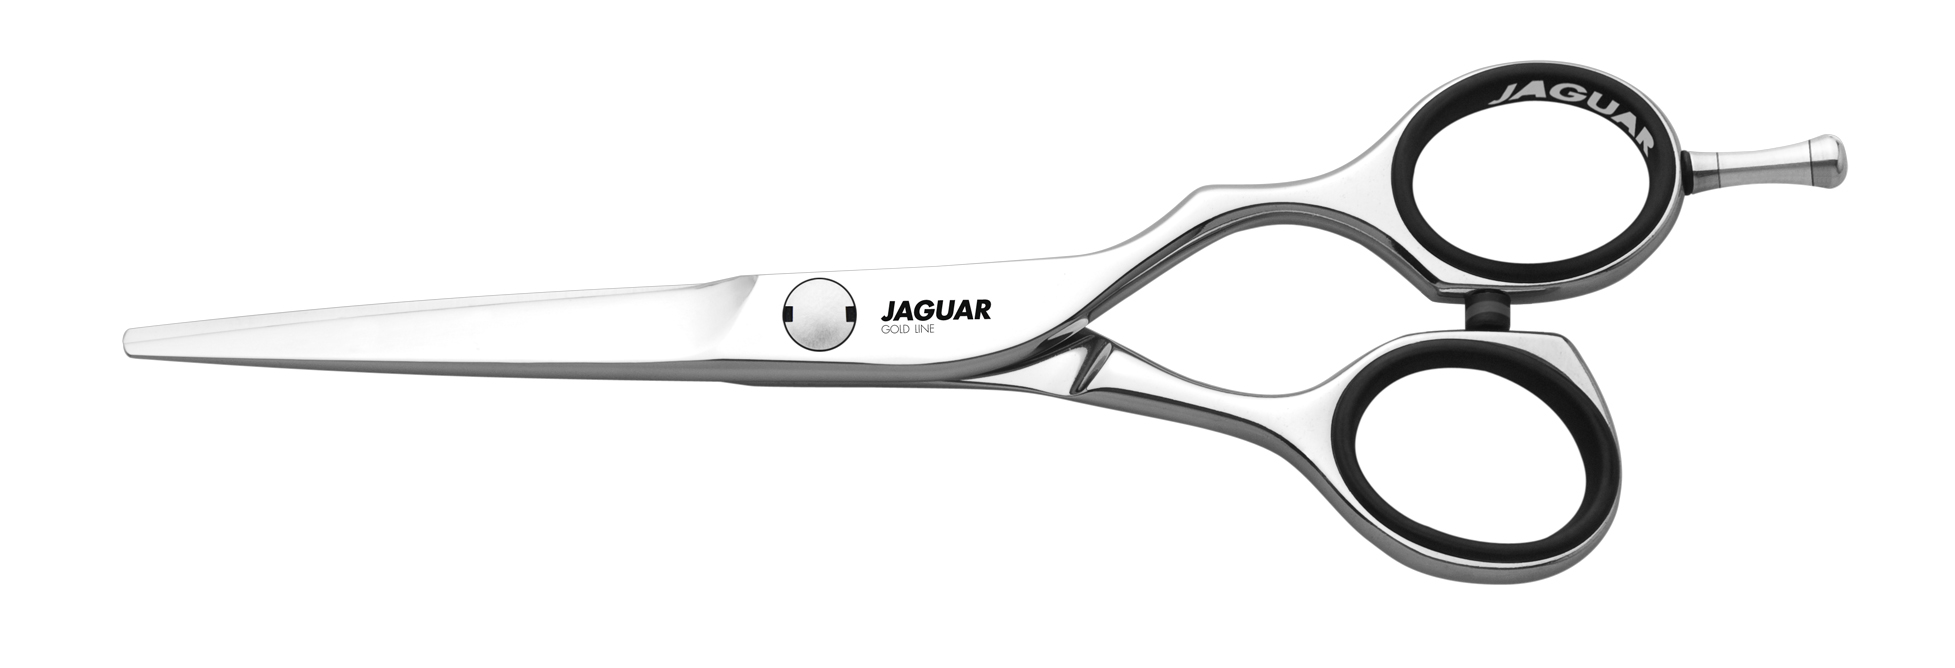 JAGUAR Ножницы Jaguar Diamond E 6'(15,5cm)GL ножницы 21150 2 diamond e design 5